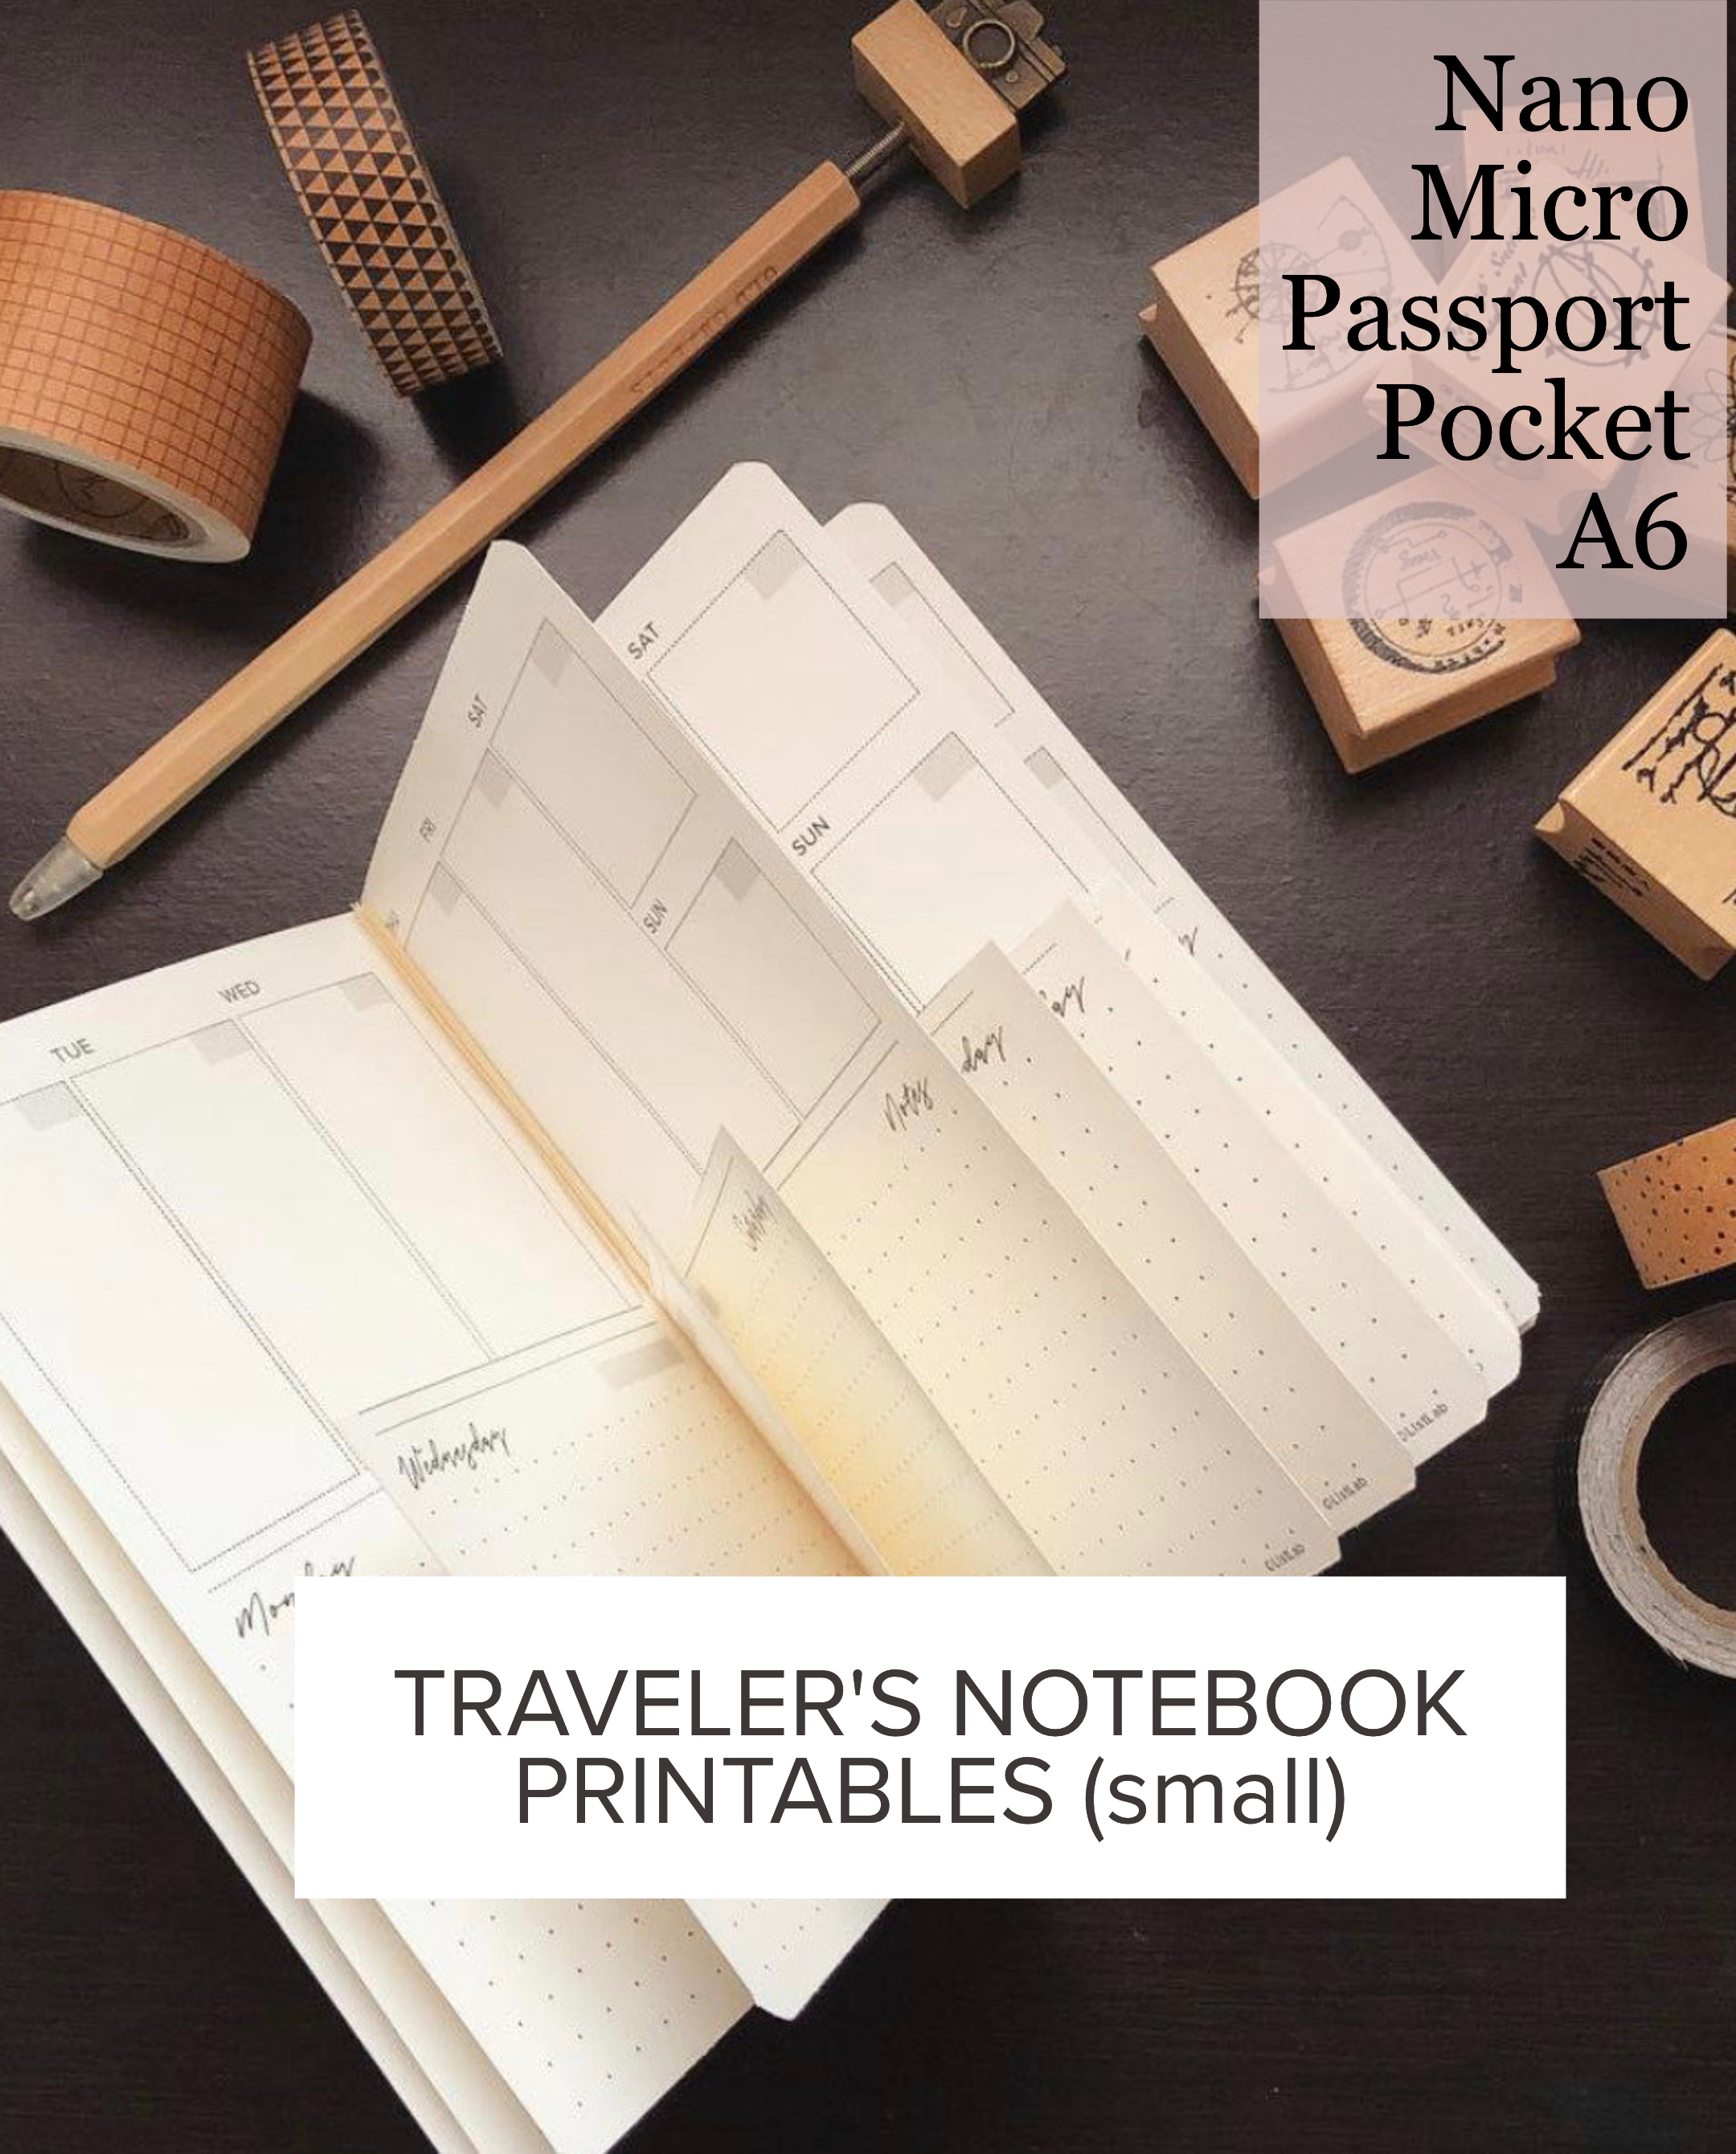 PRINTABLE TRAVELER'S NOTEBOOK INSERTS (SMALL)